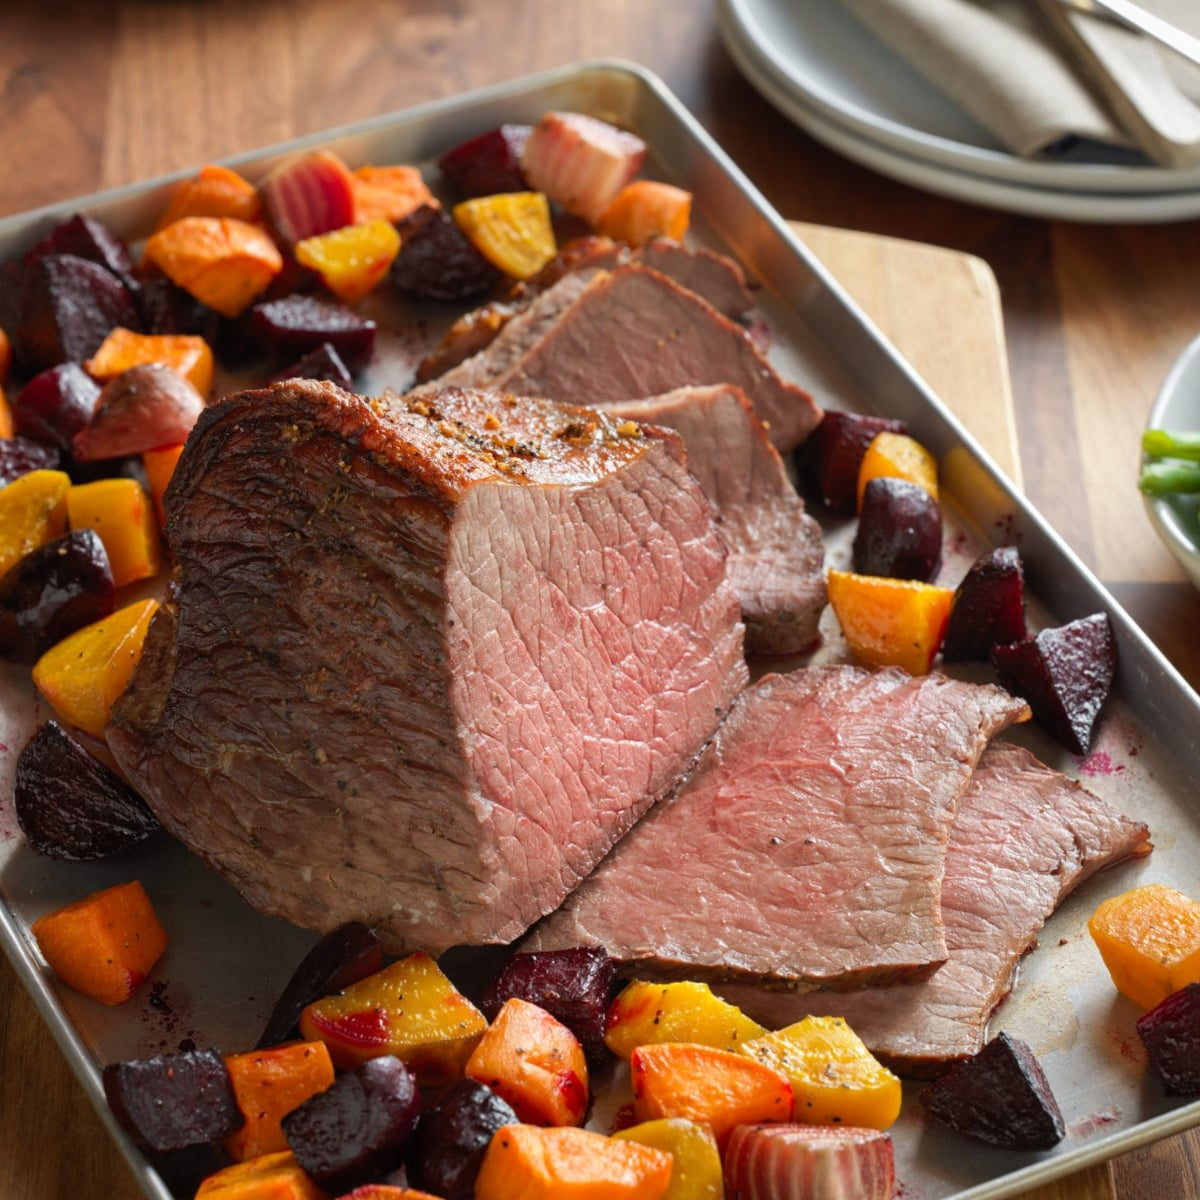 Eye of round roast beef on a tray with root vegetables